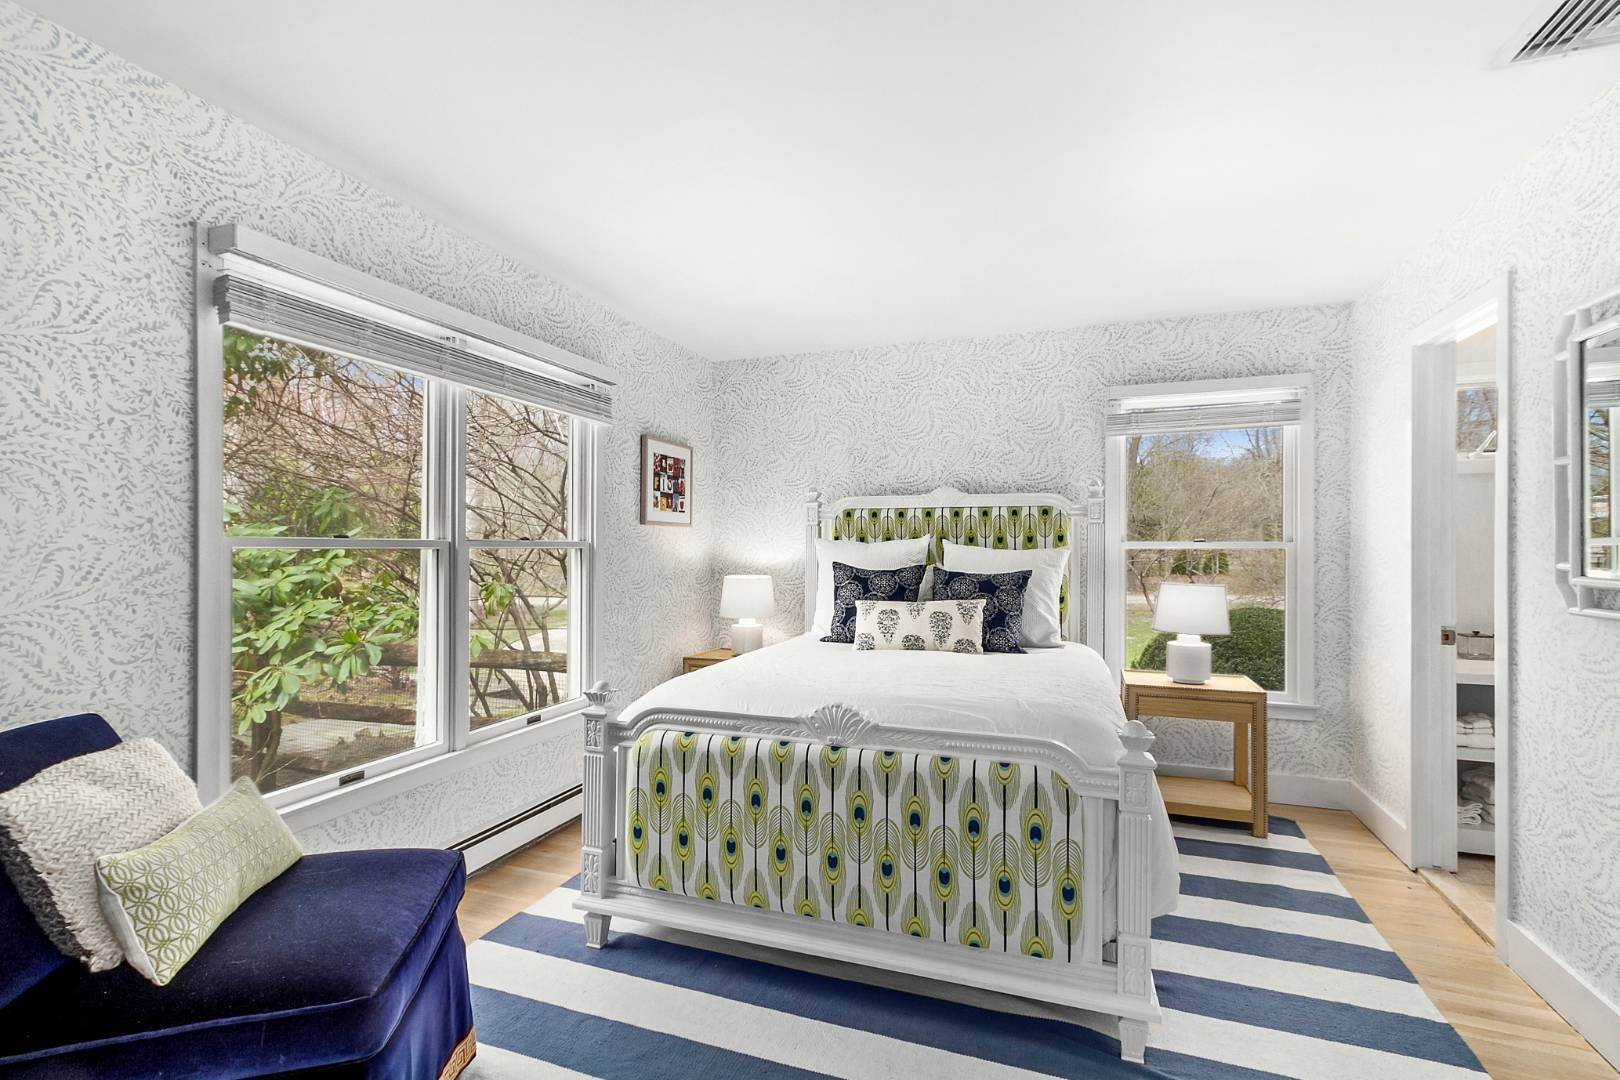 15. Single Family Home for Sale at Historic Springs Two-House Compound 104 Old Stone Hwy, East Hampton, NY 11937